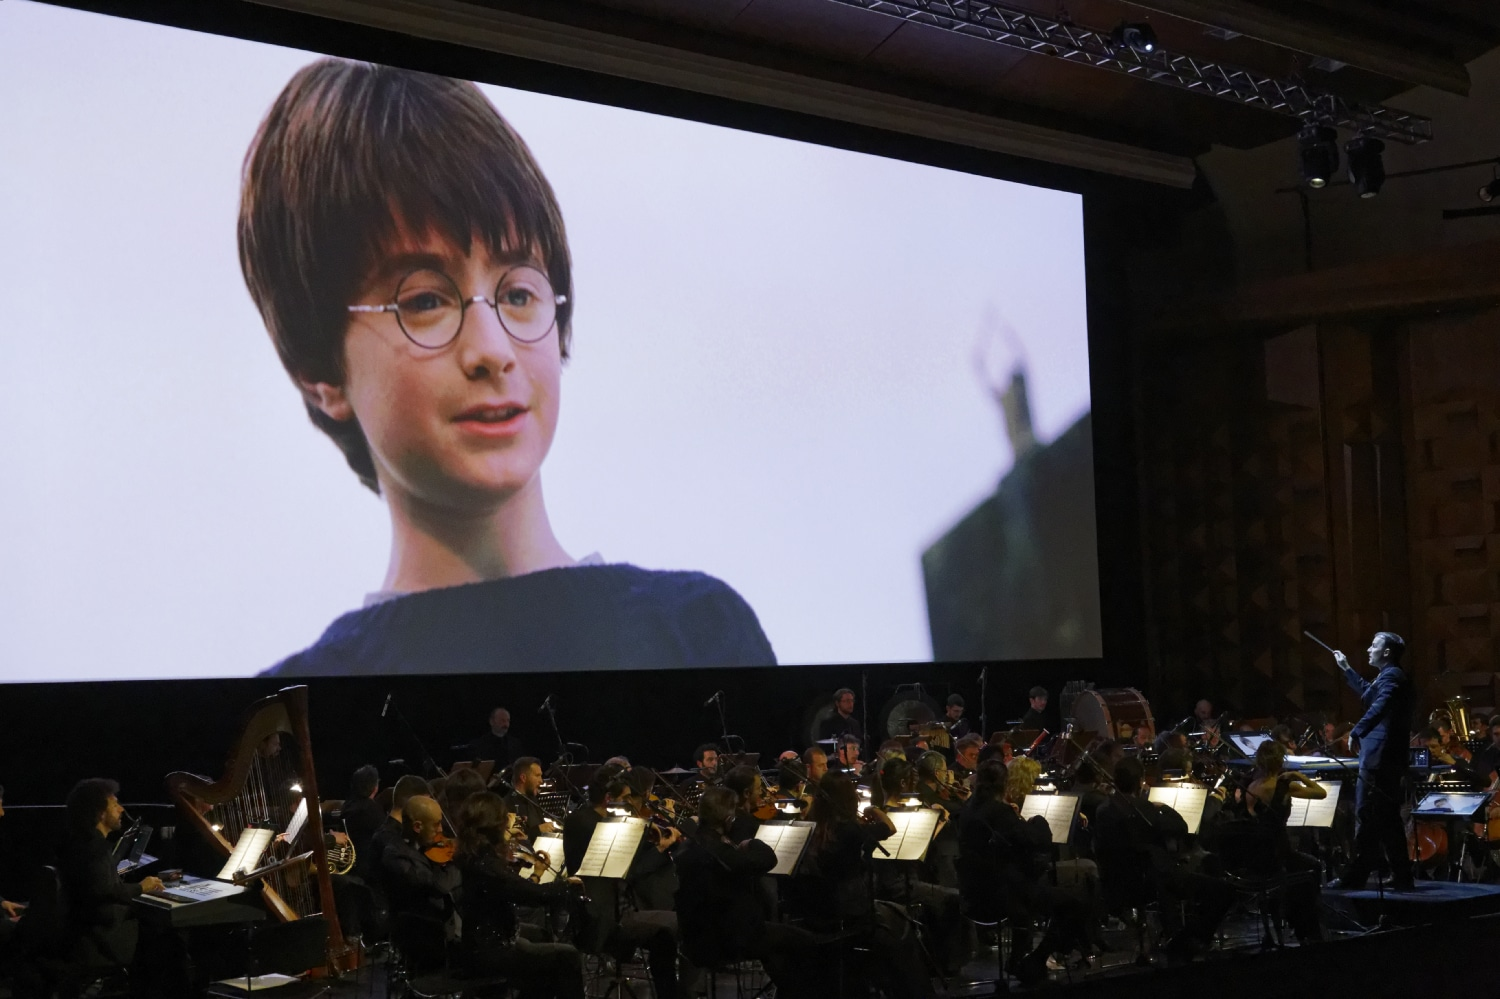 cine-concerto-harry-potter-auditorium-conciliazione-3